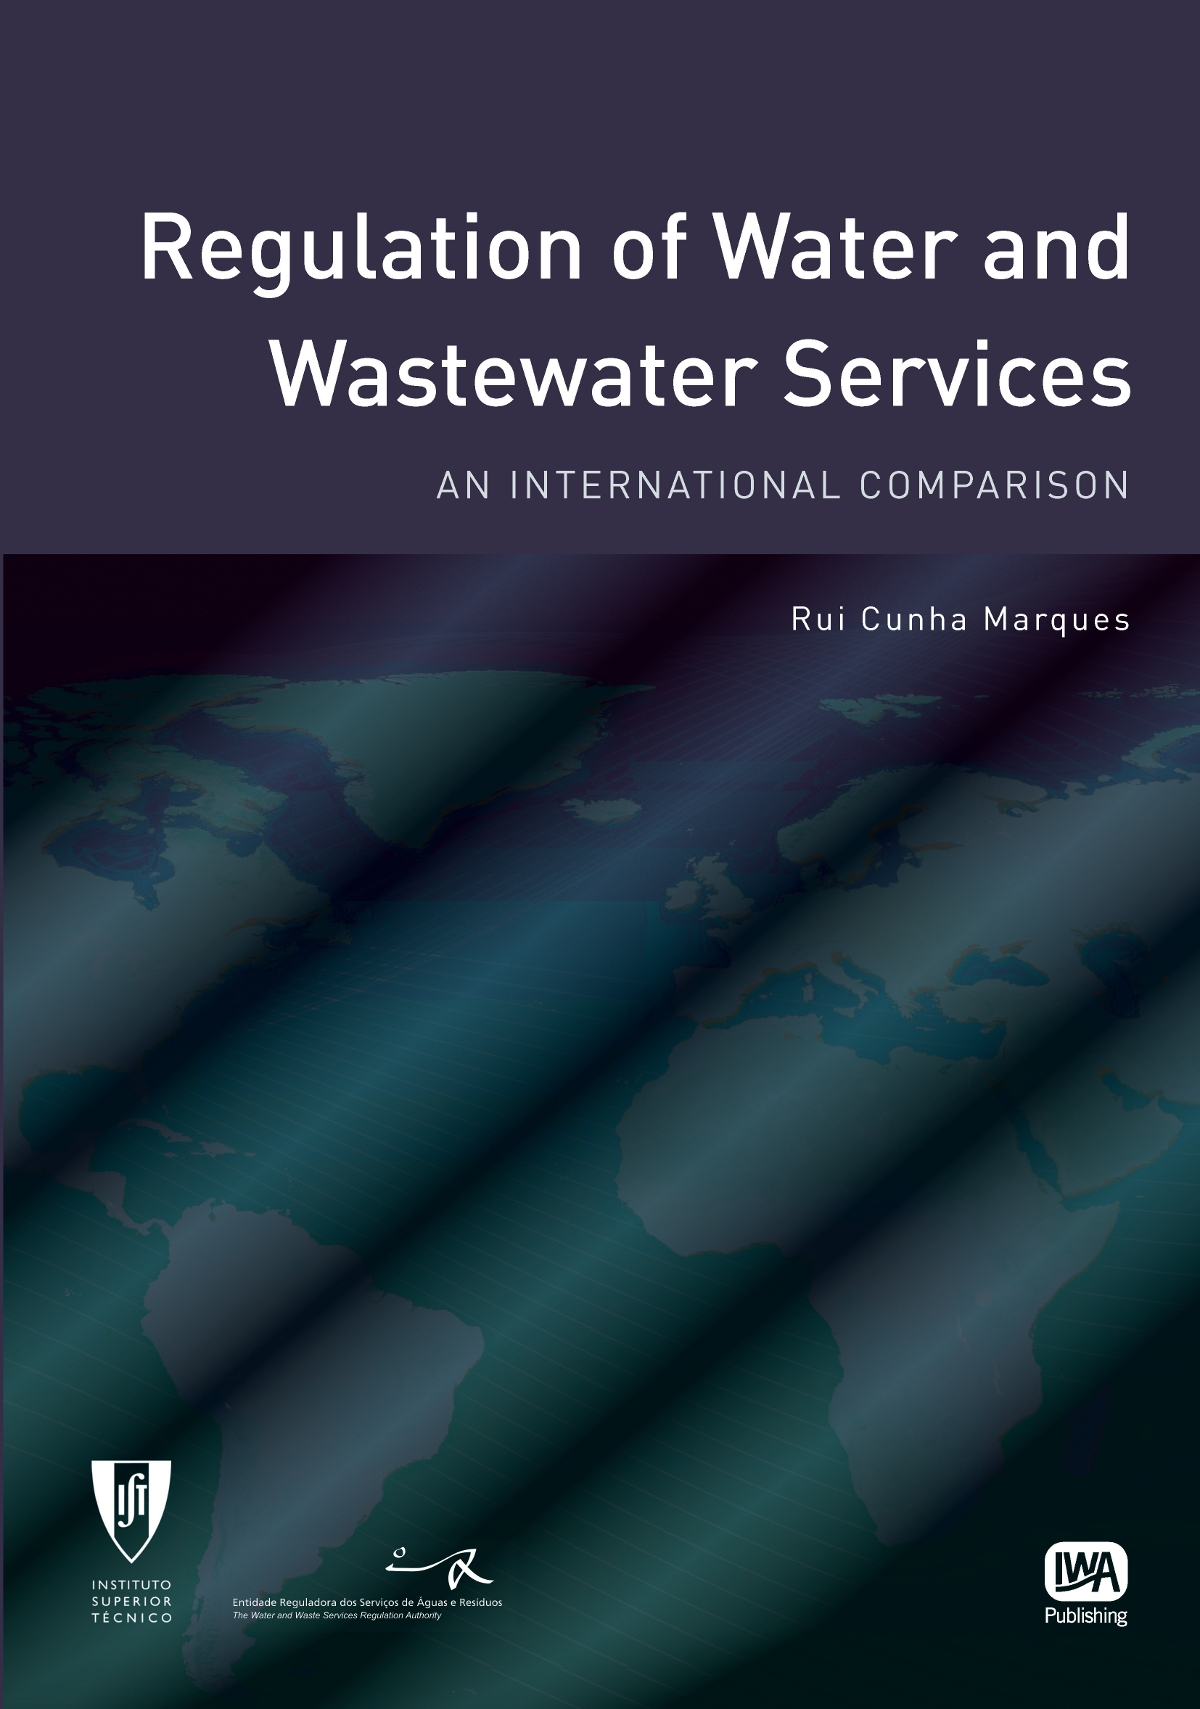 Regulation of Water and Wastewater Services